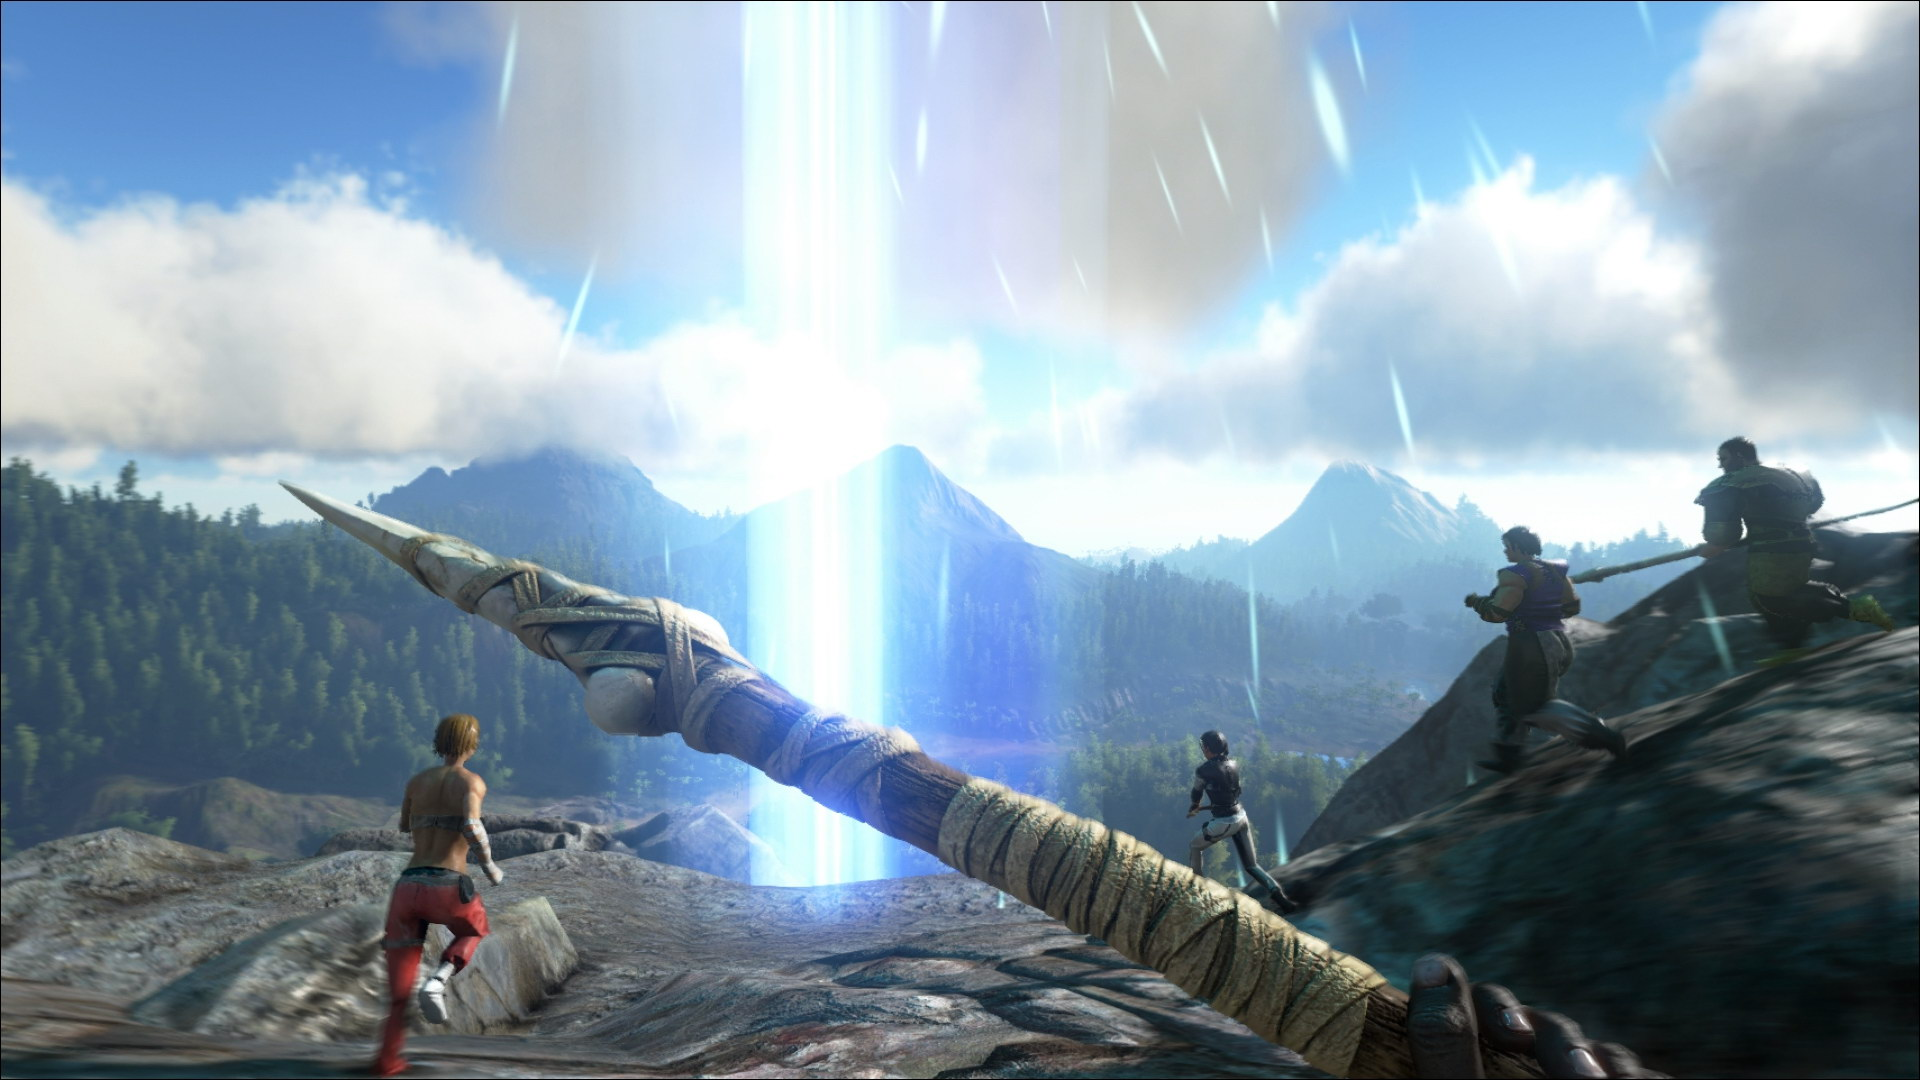 ARK: Survival Evolved goes to Xbox One